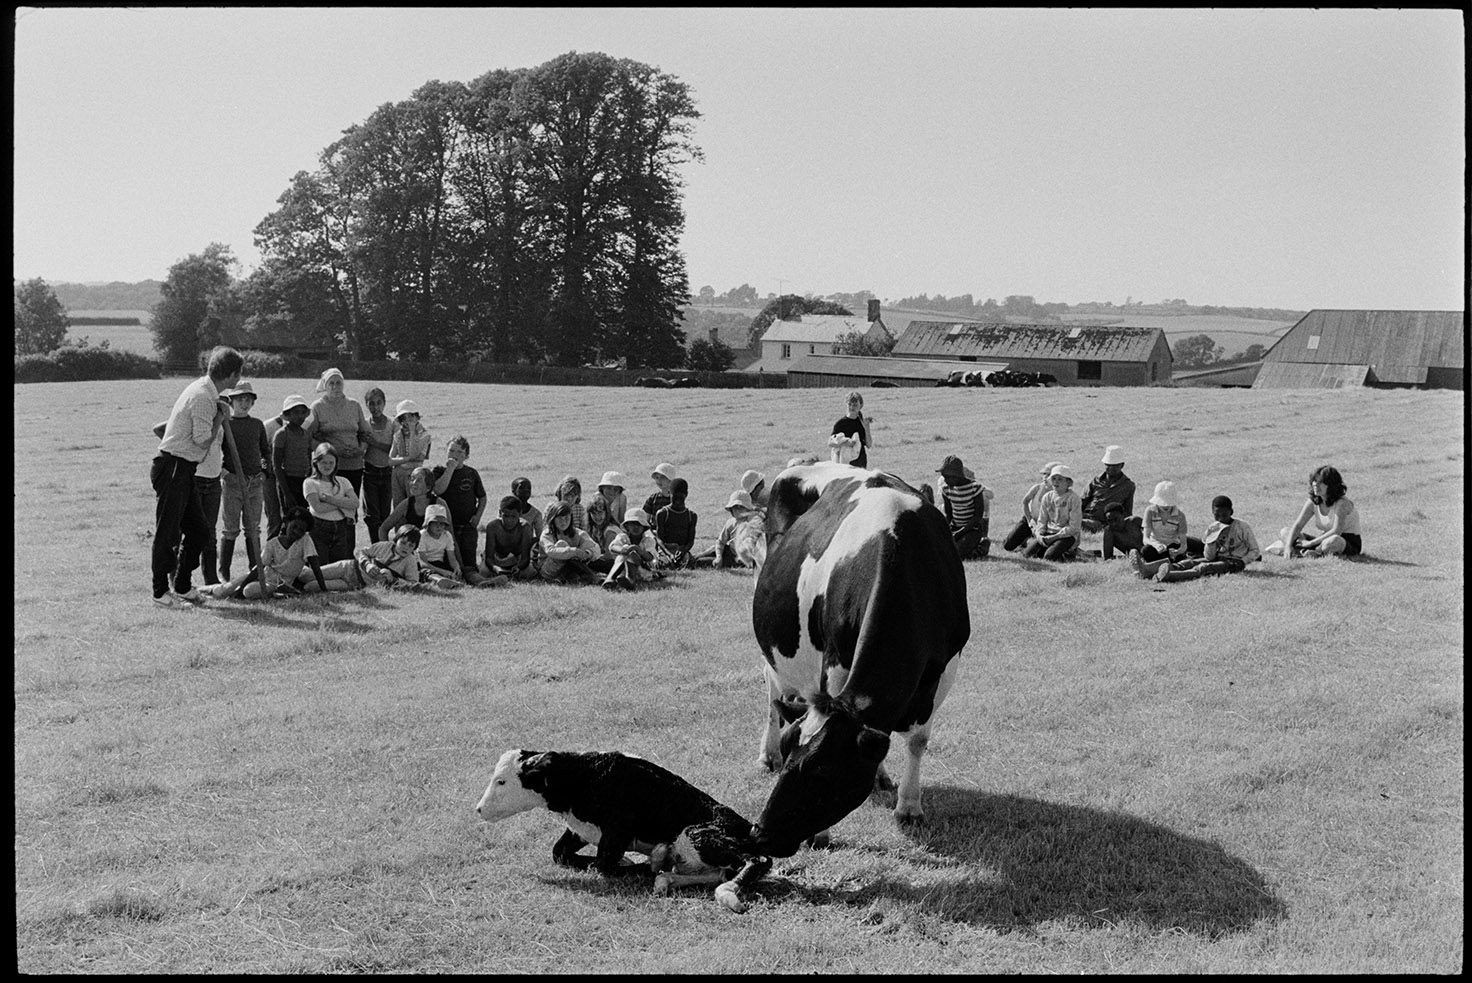 School children watching cow and new born calf in a field, Farms for City Children. Iddesleigh, Parsonage, August 1984. Documentary photograph by James Ravilious for the Beaford Archive © Beaford Arts